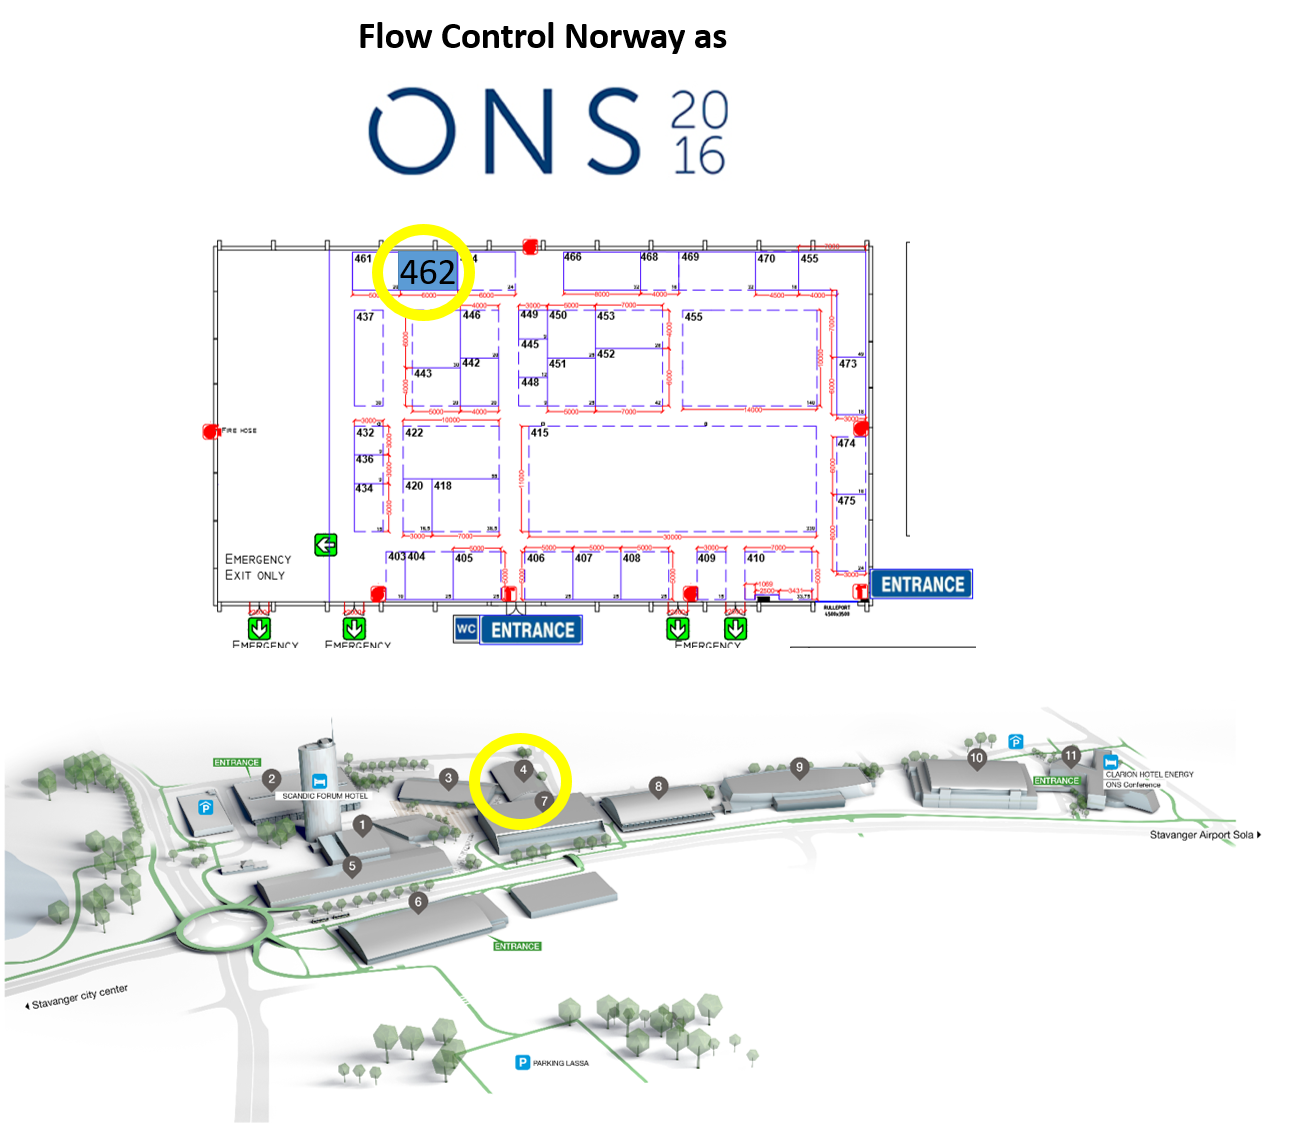 ONS 2016 stand 462